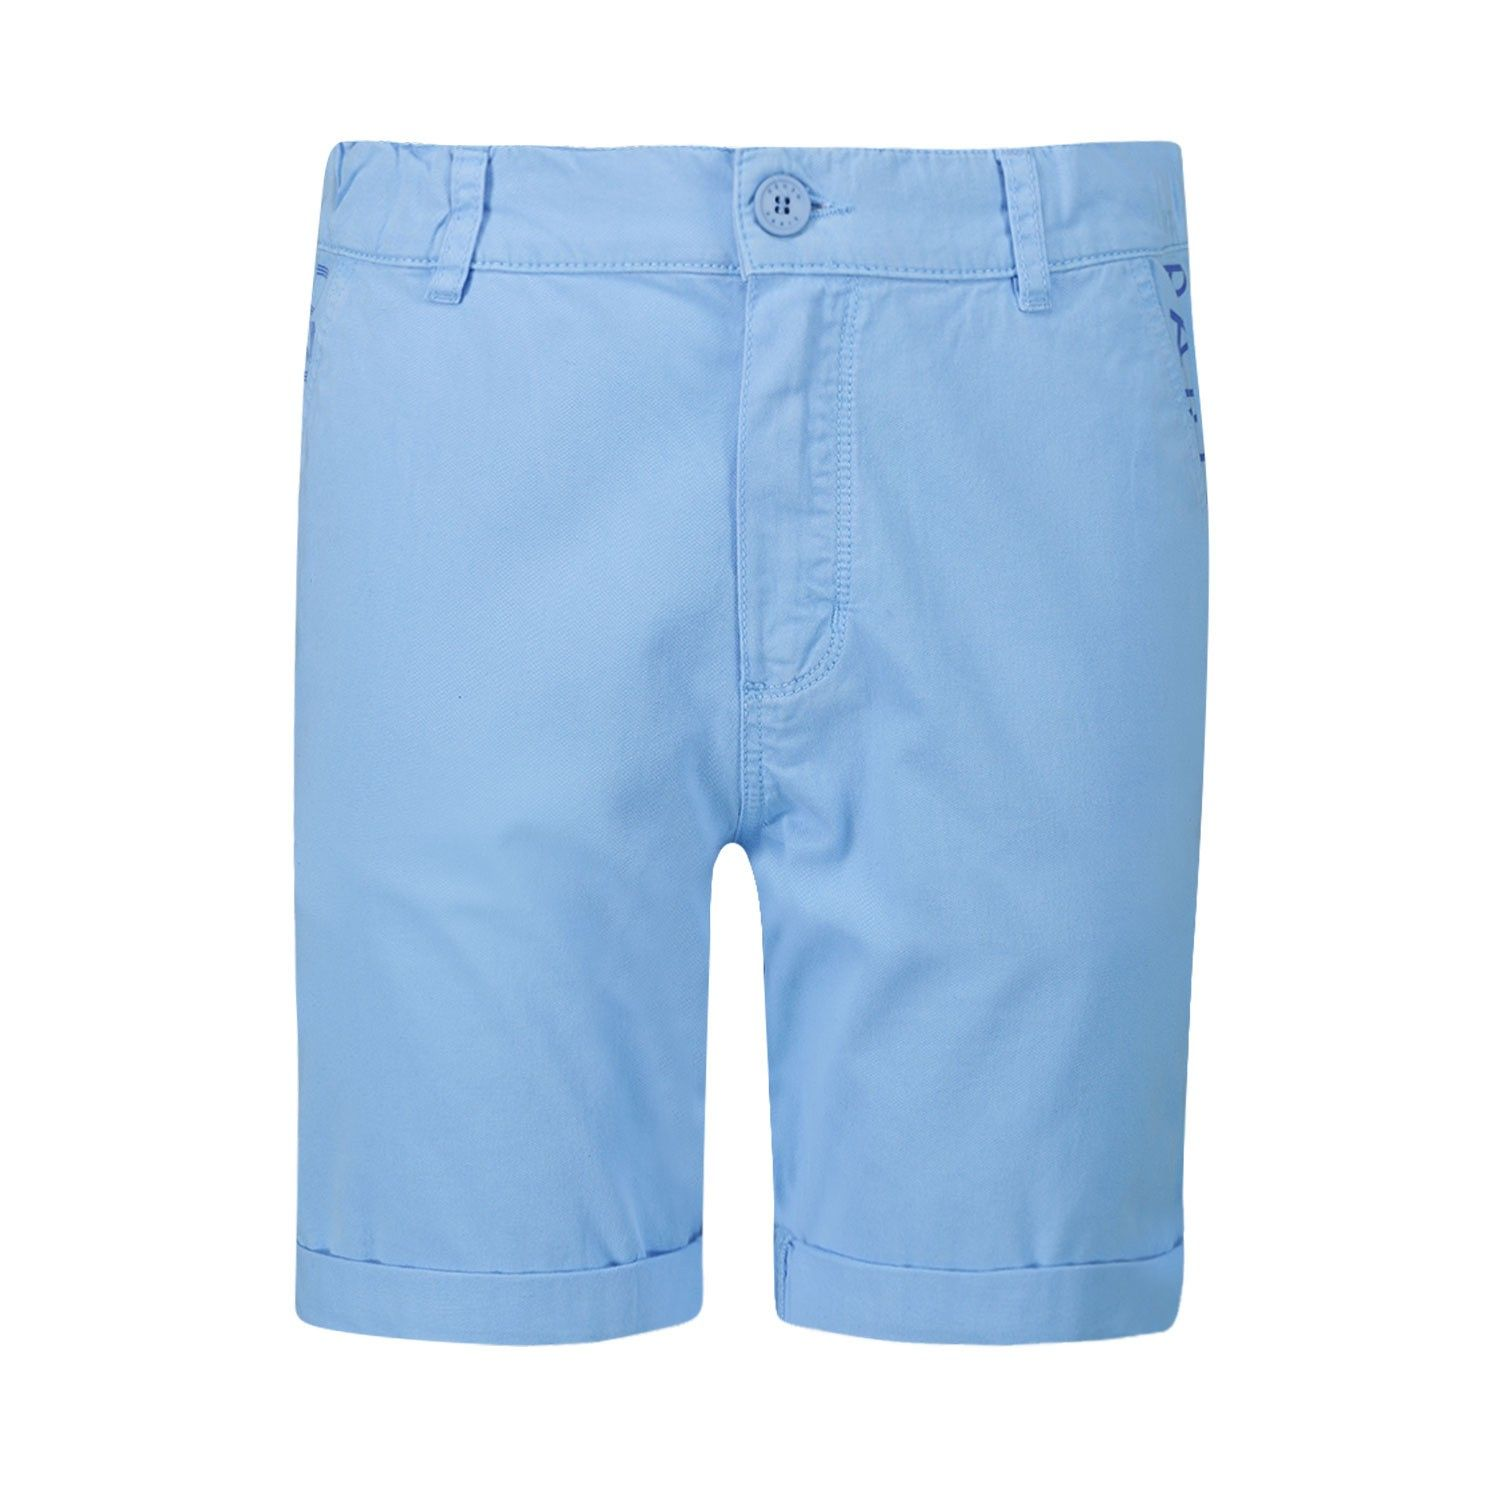 Picture of Kenzo 25508 kids shorts blue